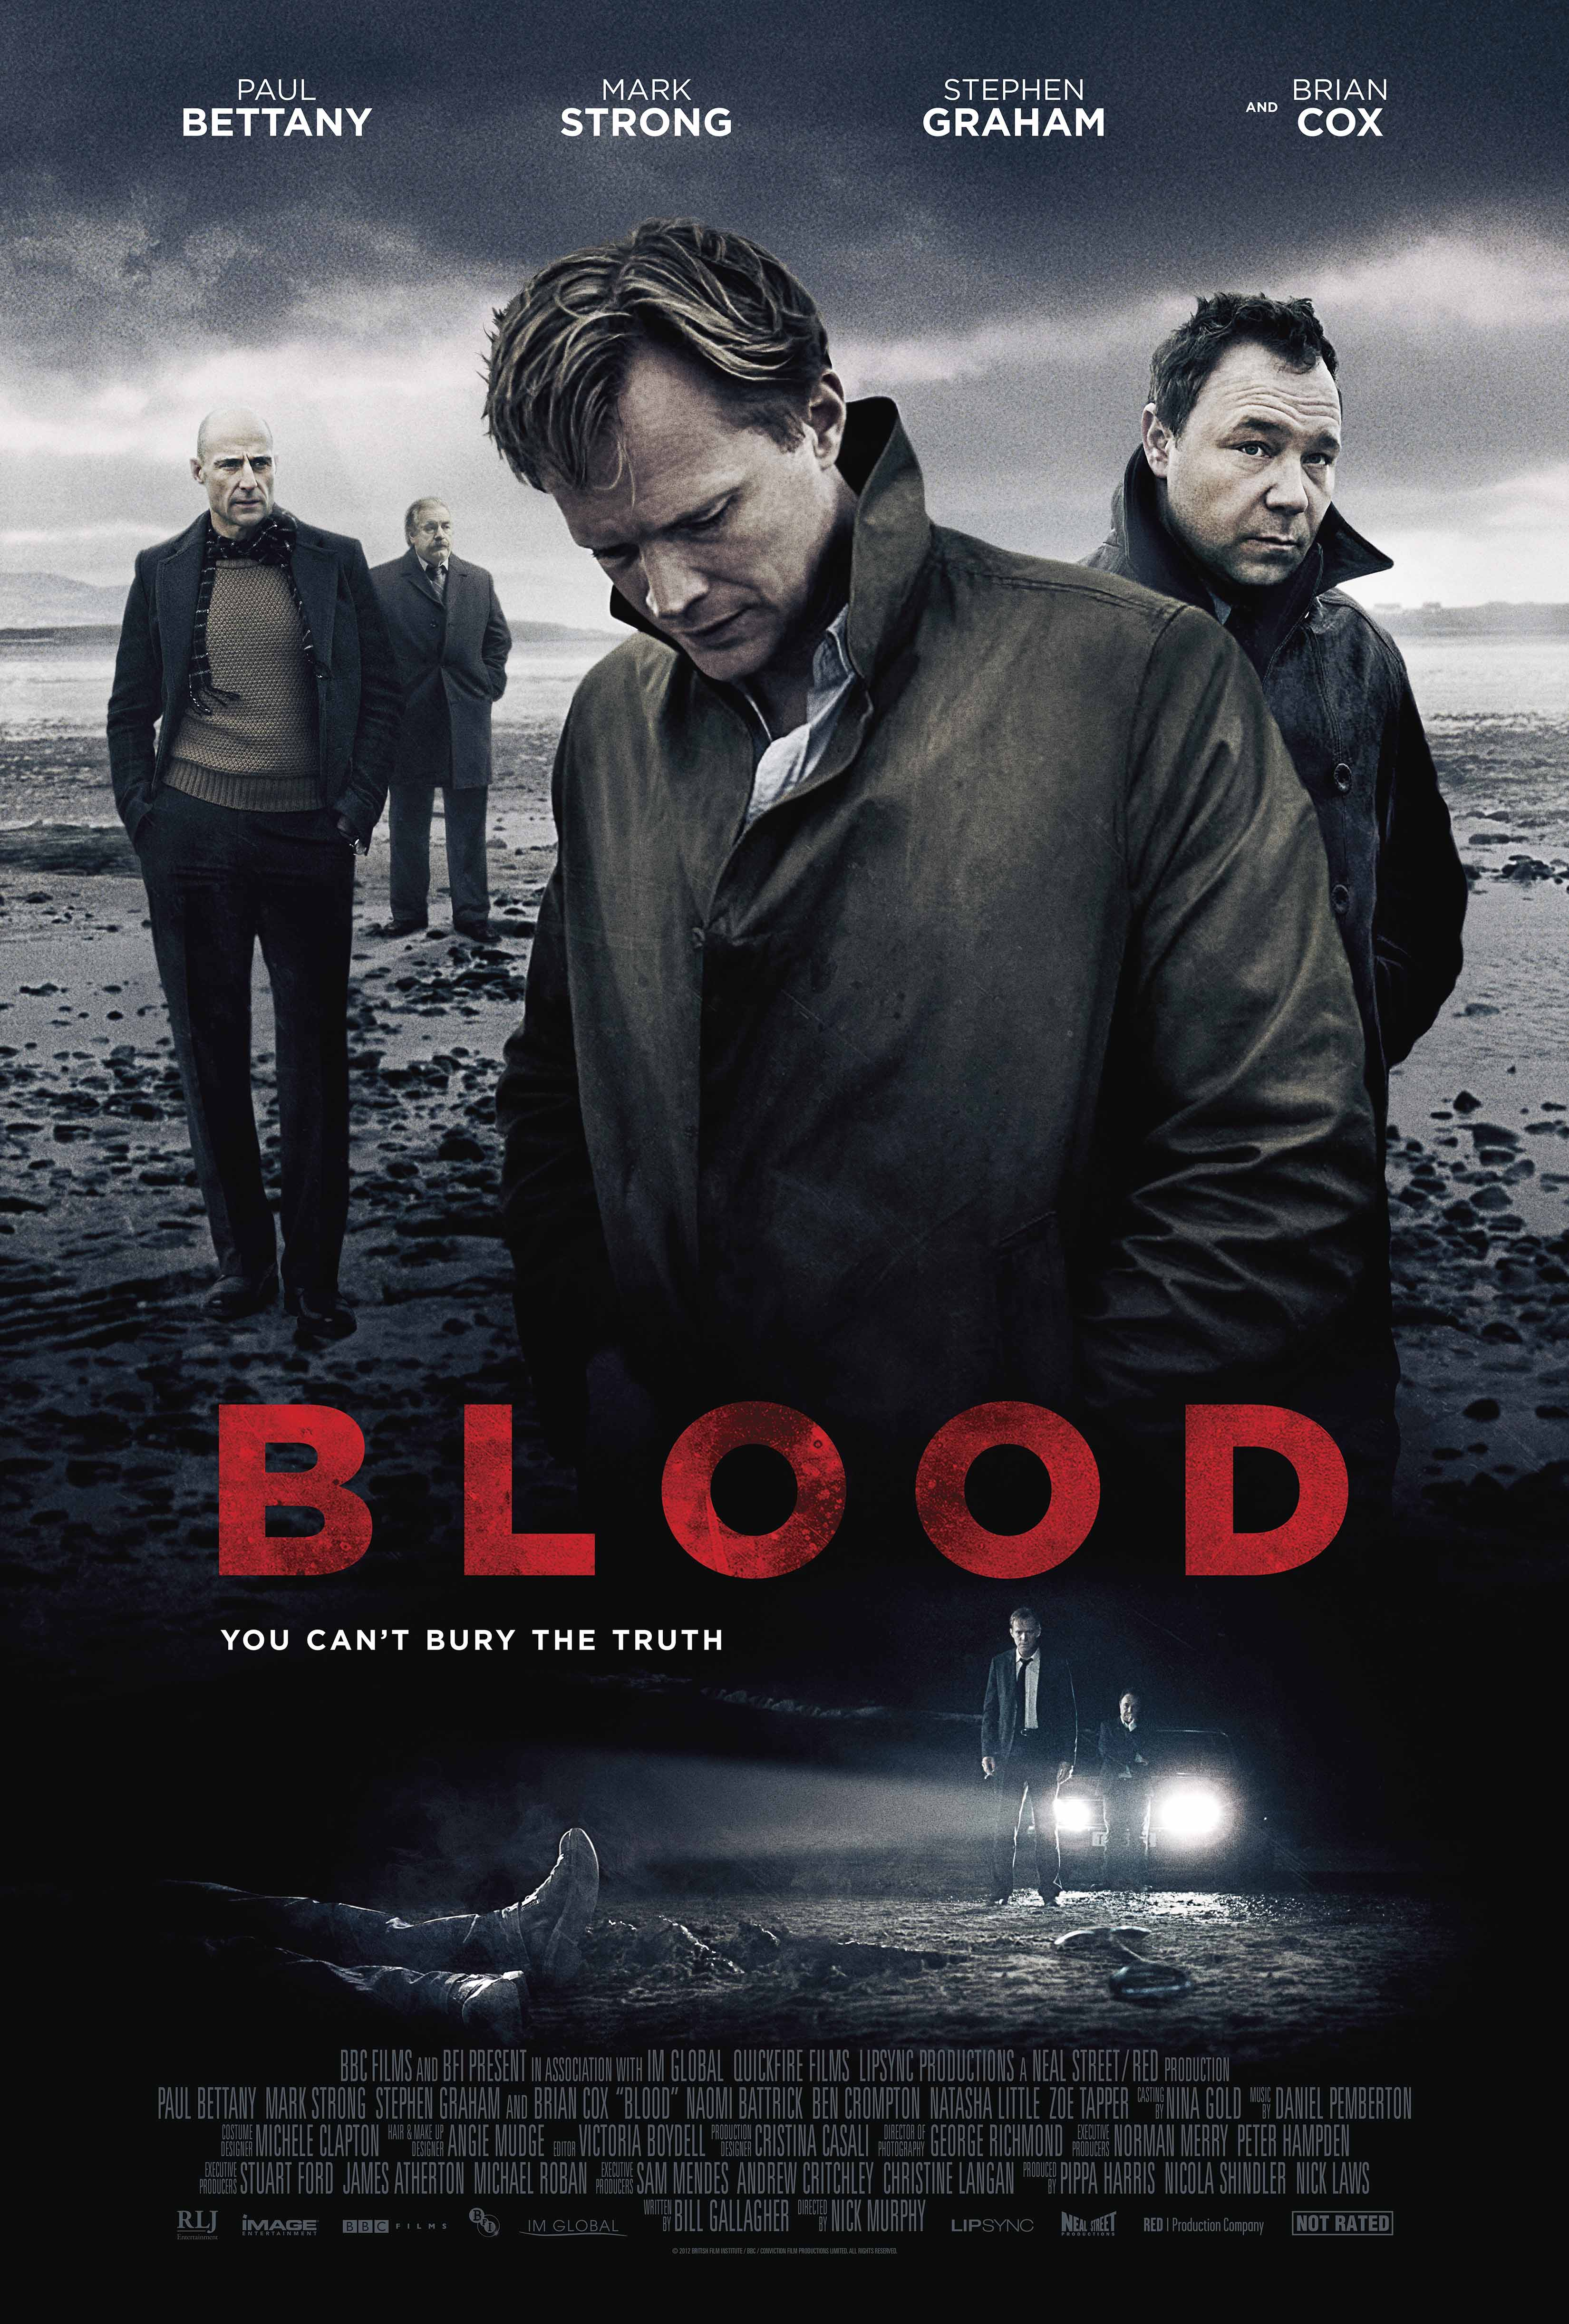 BLOOD THEATRICAL Detective Thriller Blood Coming to VOD July 11